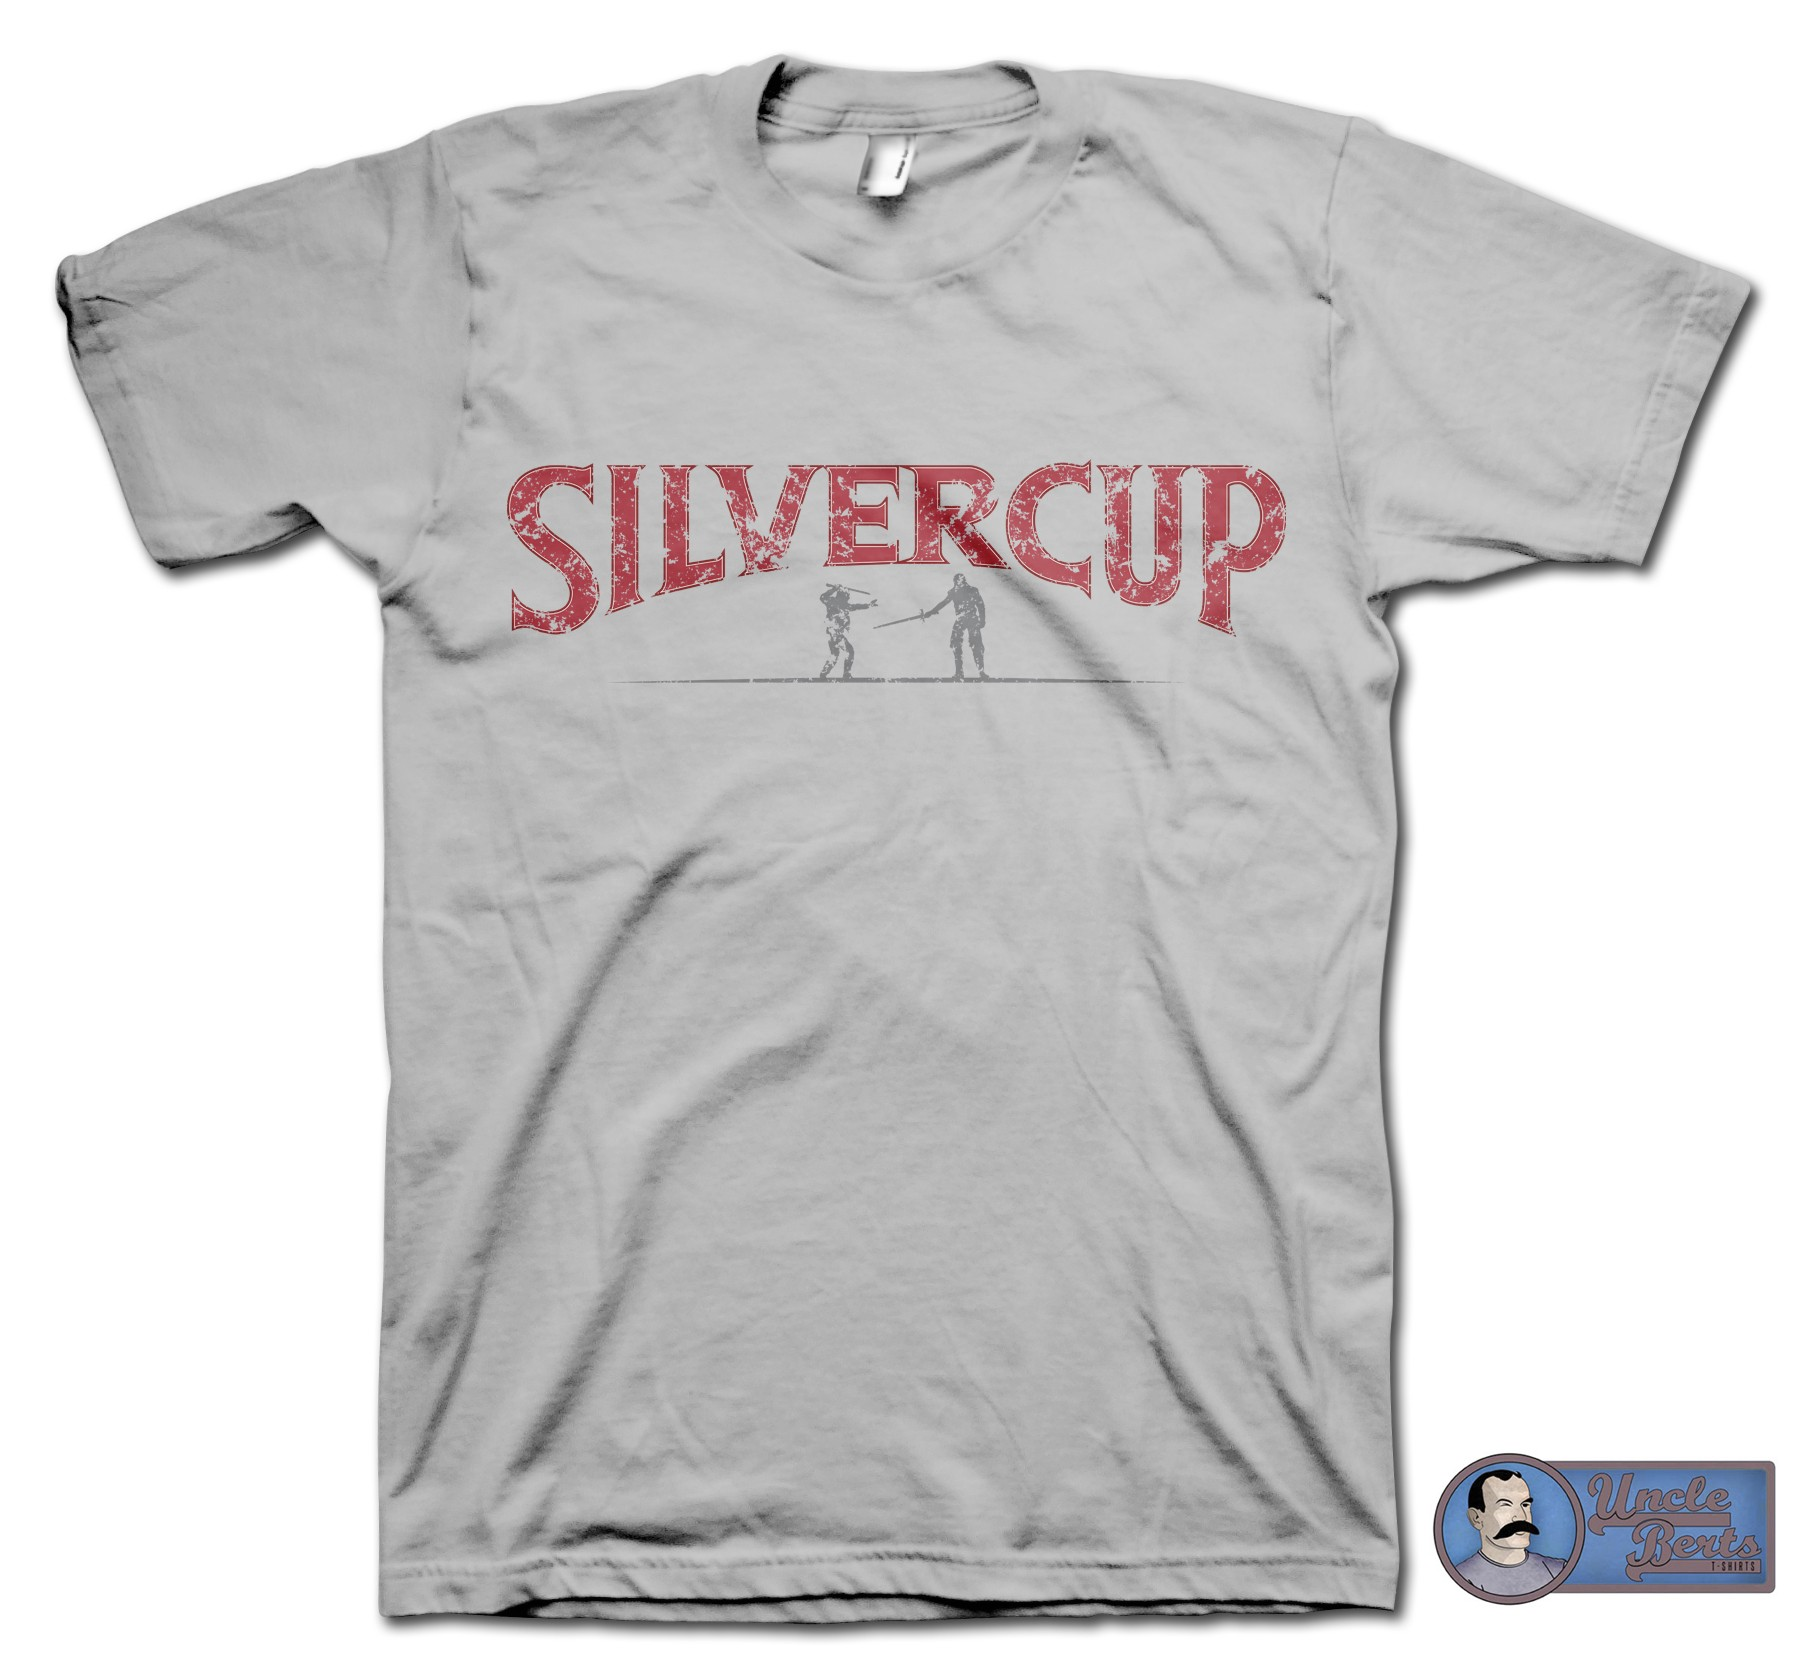 Highlander (1986) inspired SilverCup T-Shirt